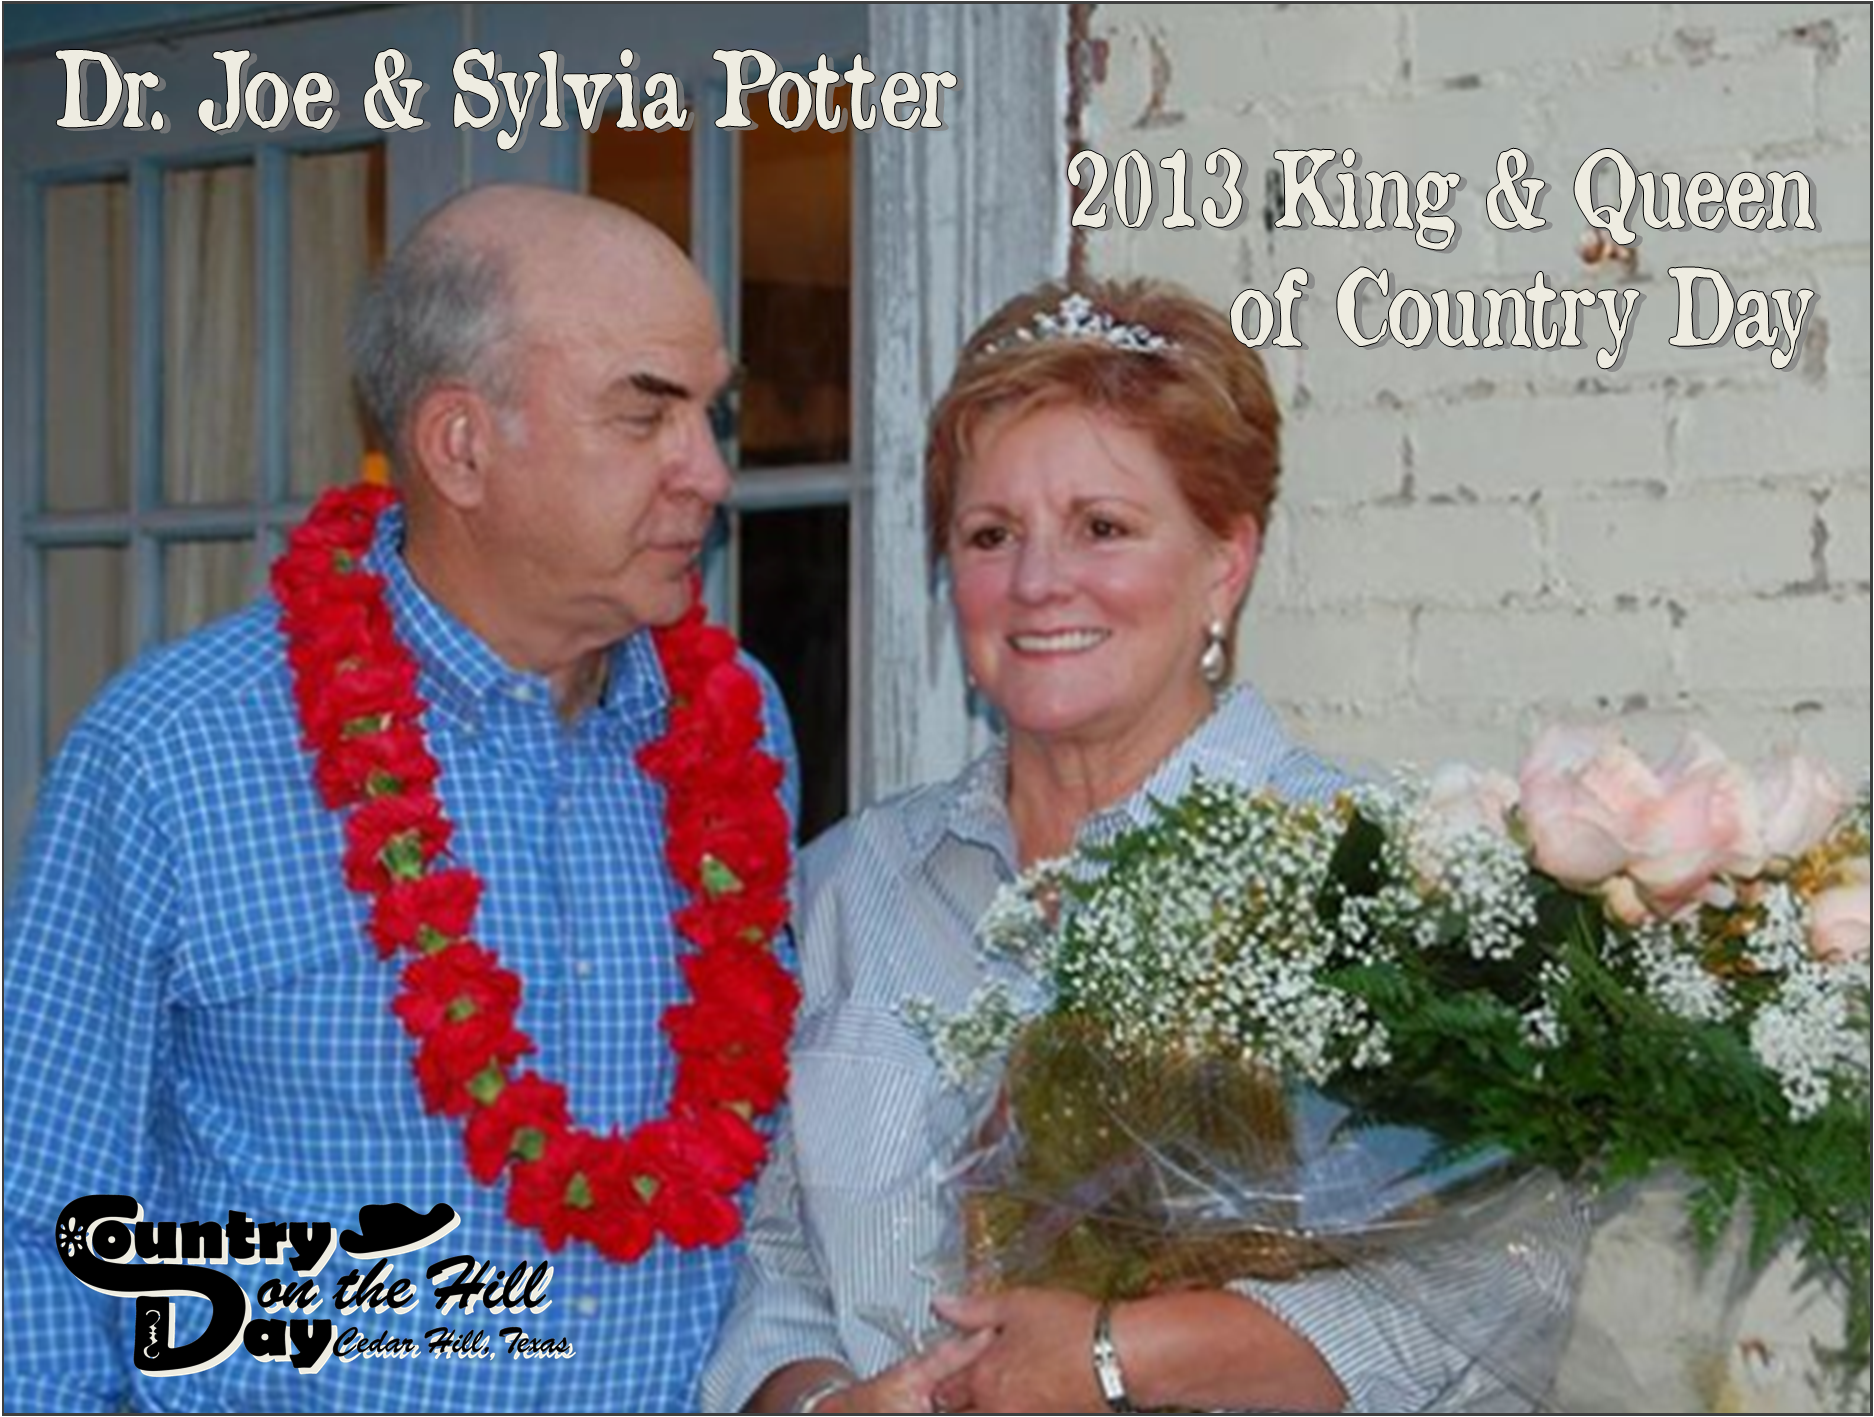 Dr. Joe and Sylvia Potter with their reward for being named King and Queen of Country Day.